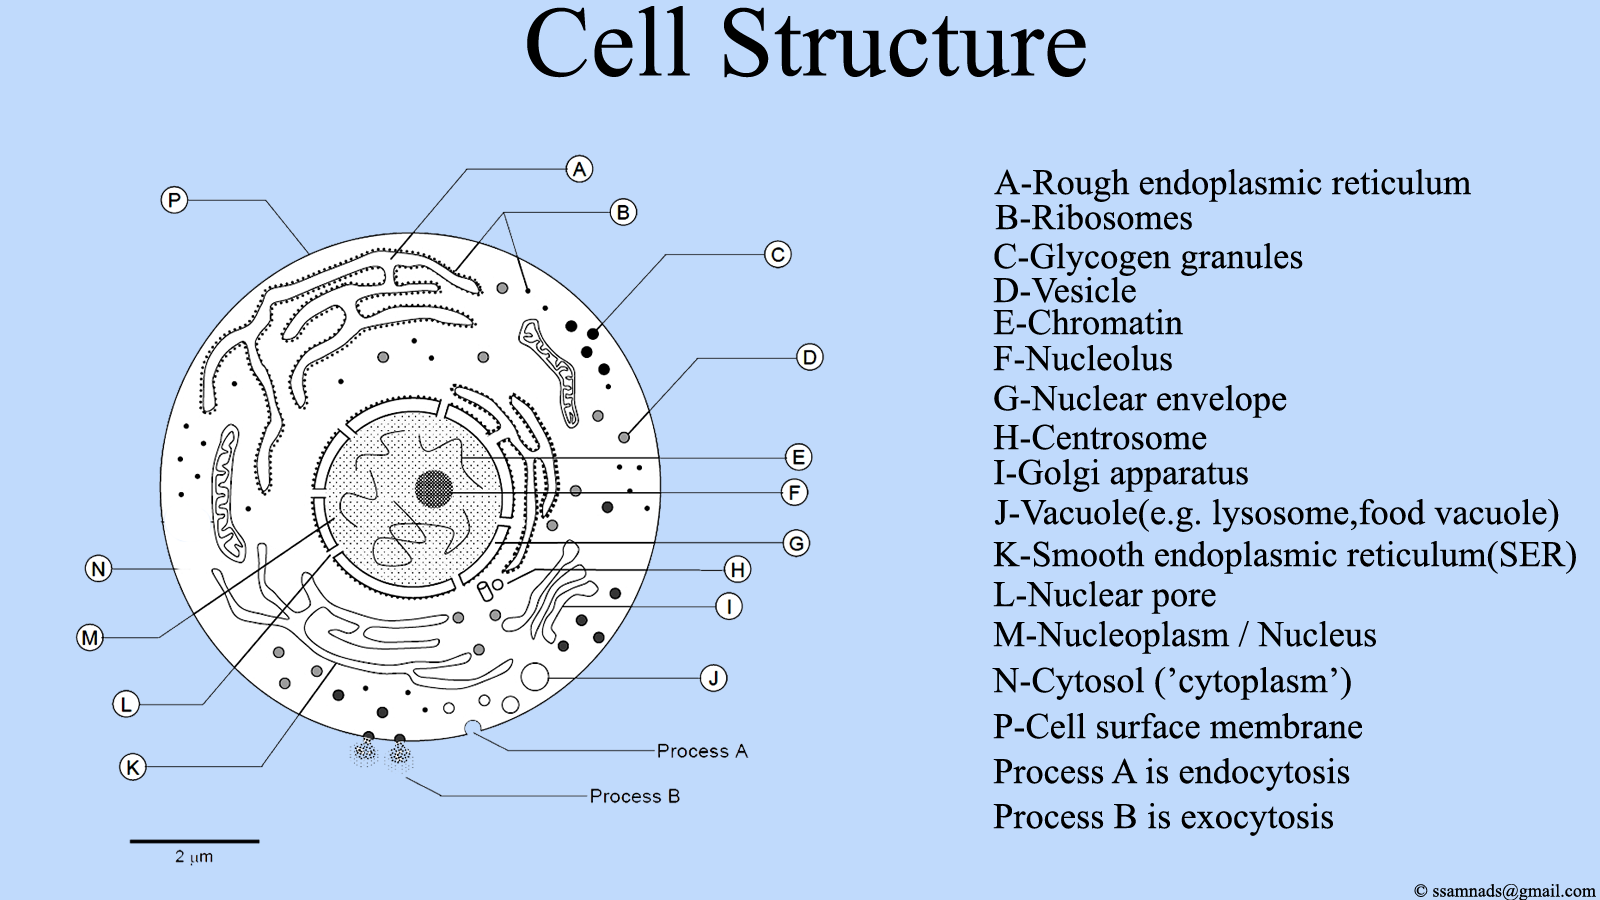 file cell structure cell diagram png wikimedia commons rh commons wikimedia org diagram of human cell structure diagram of cell structure and function